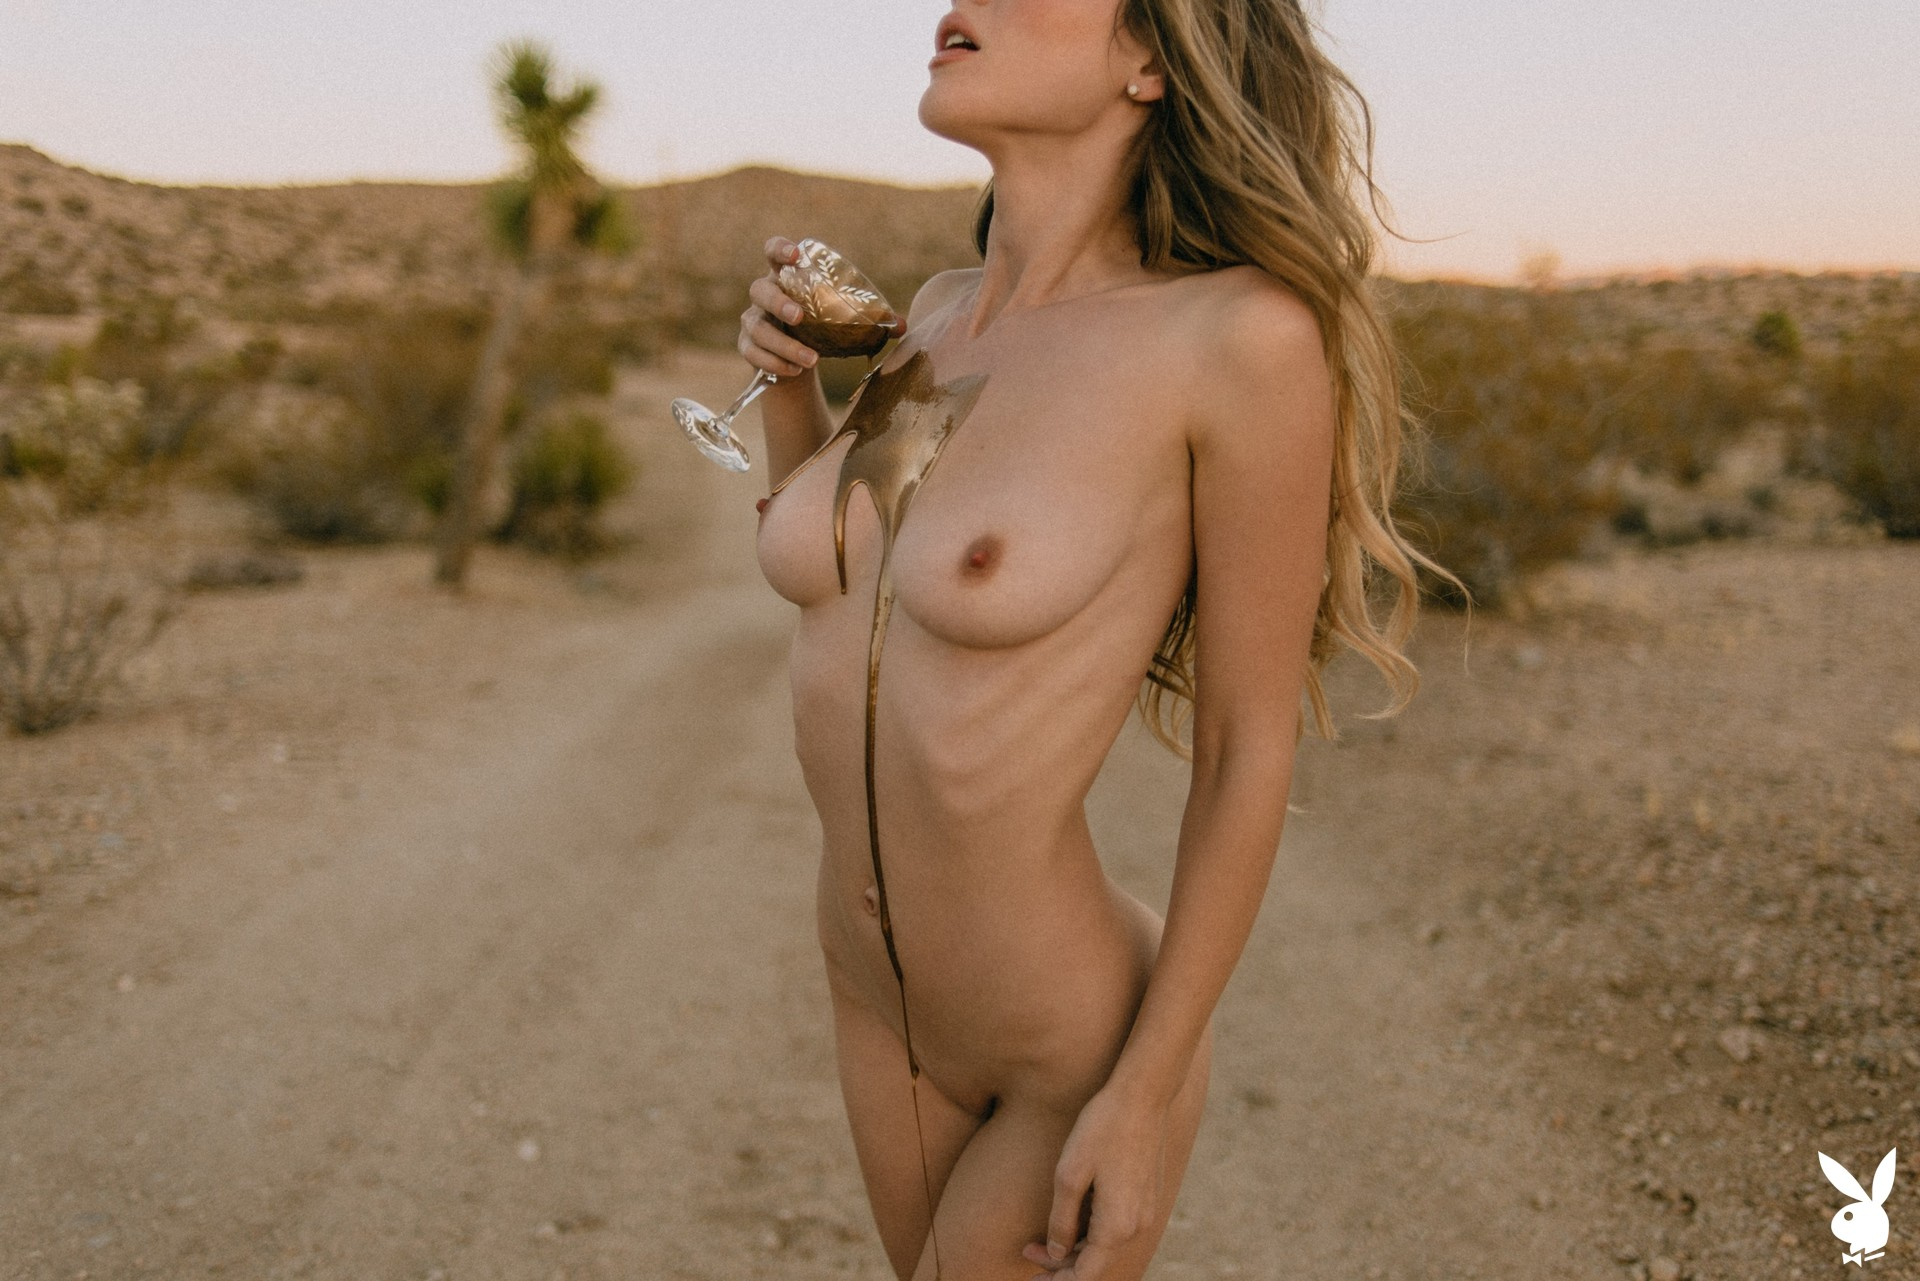 Ora Young In Dessert Shimmer Playboy Plus (19)